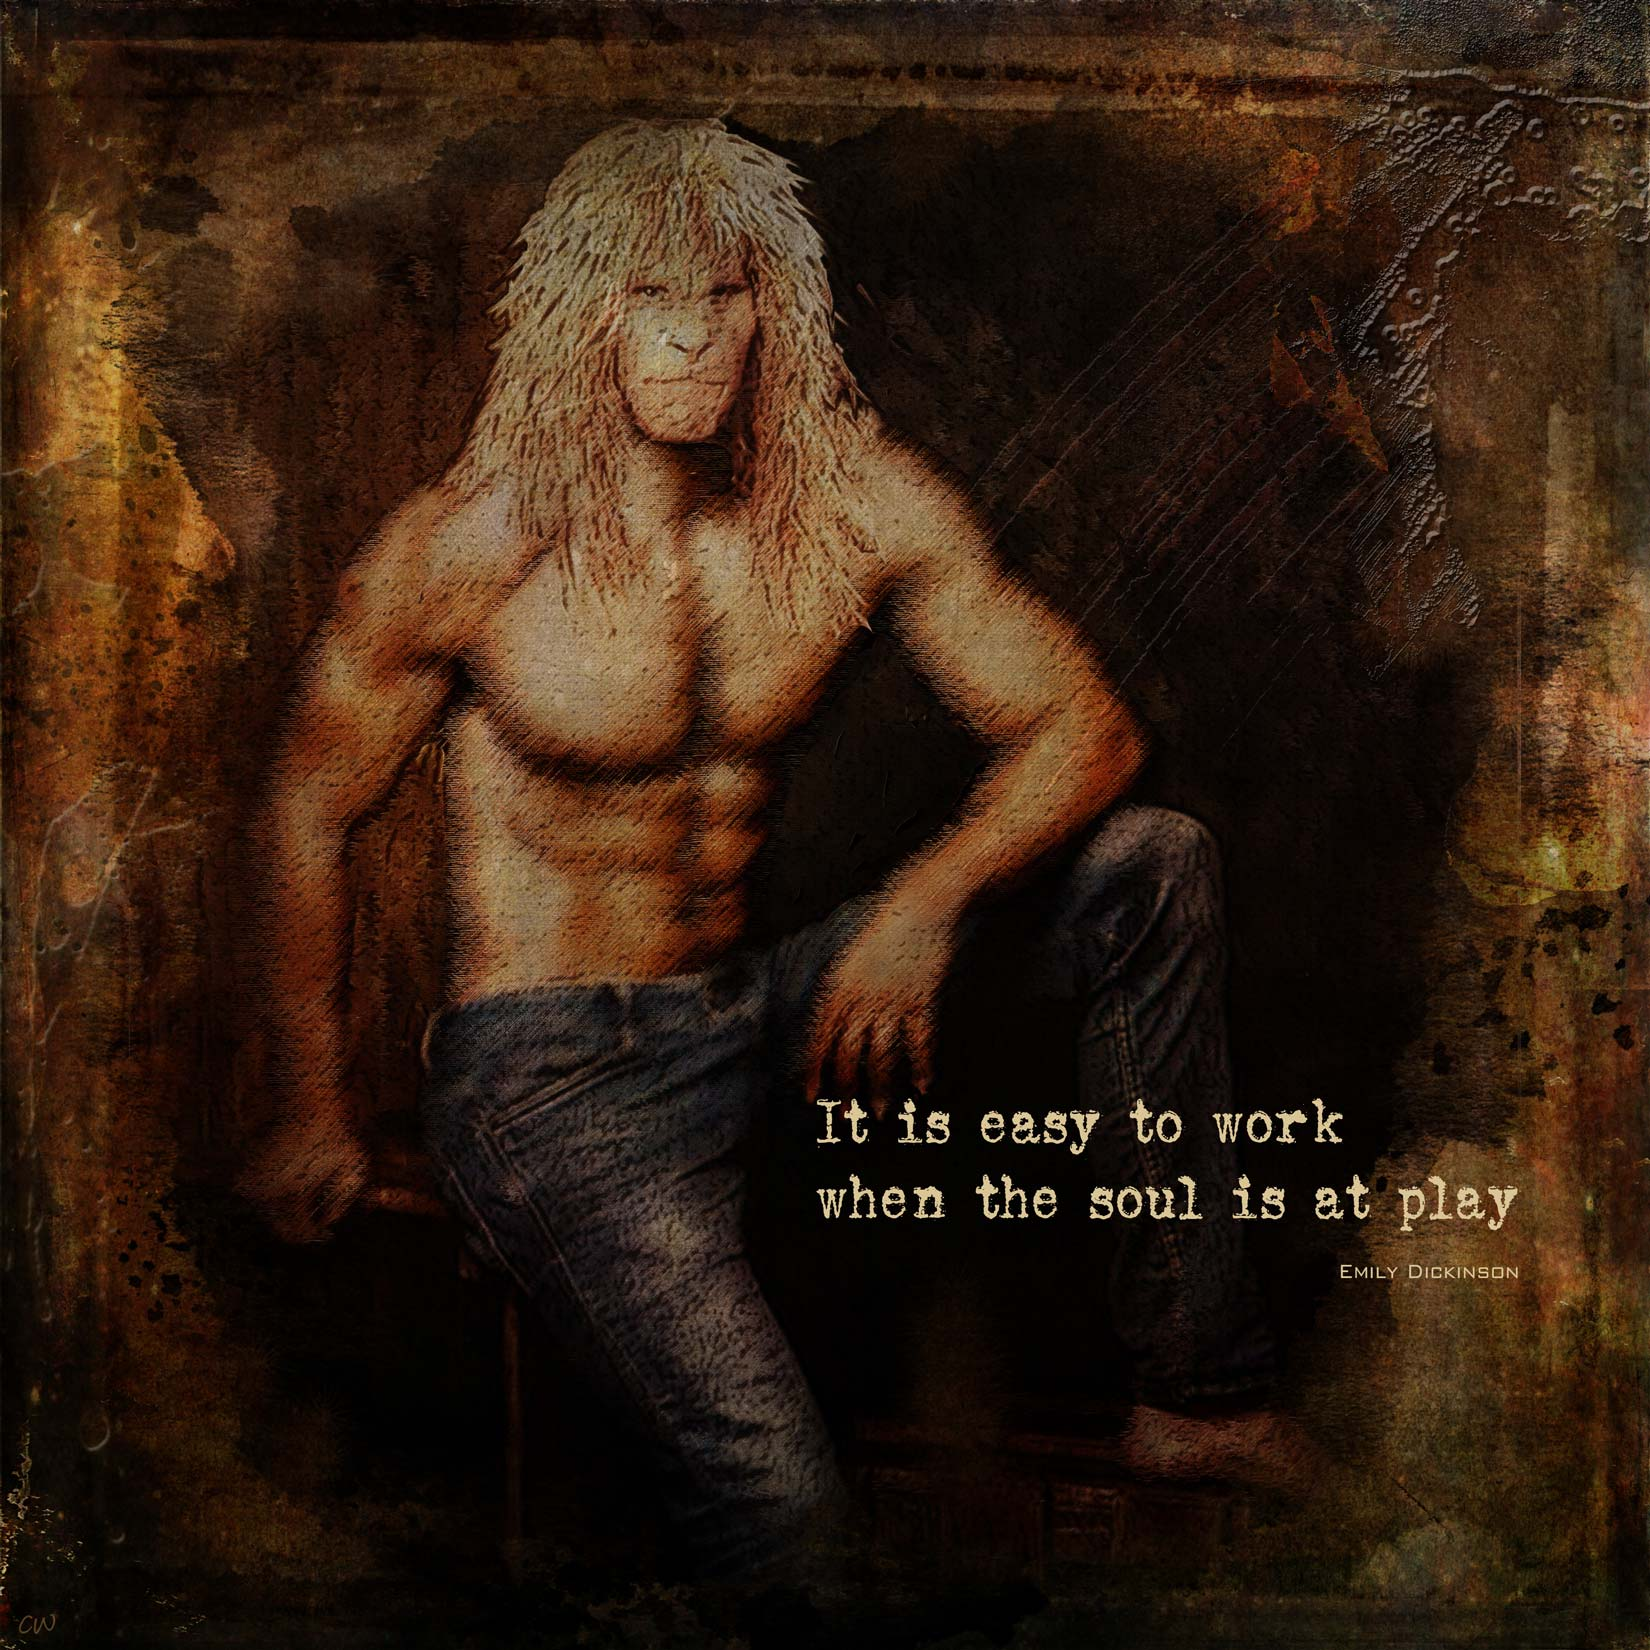 Vincent shirtless in jeans. Text reads: It is easy to work when the soul is at play (Emily Dickinson)